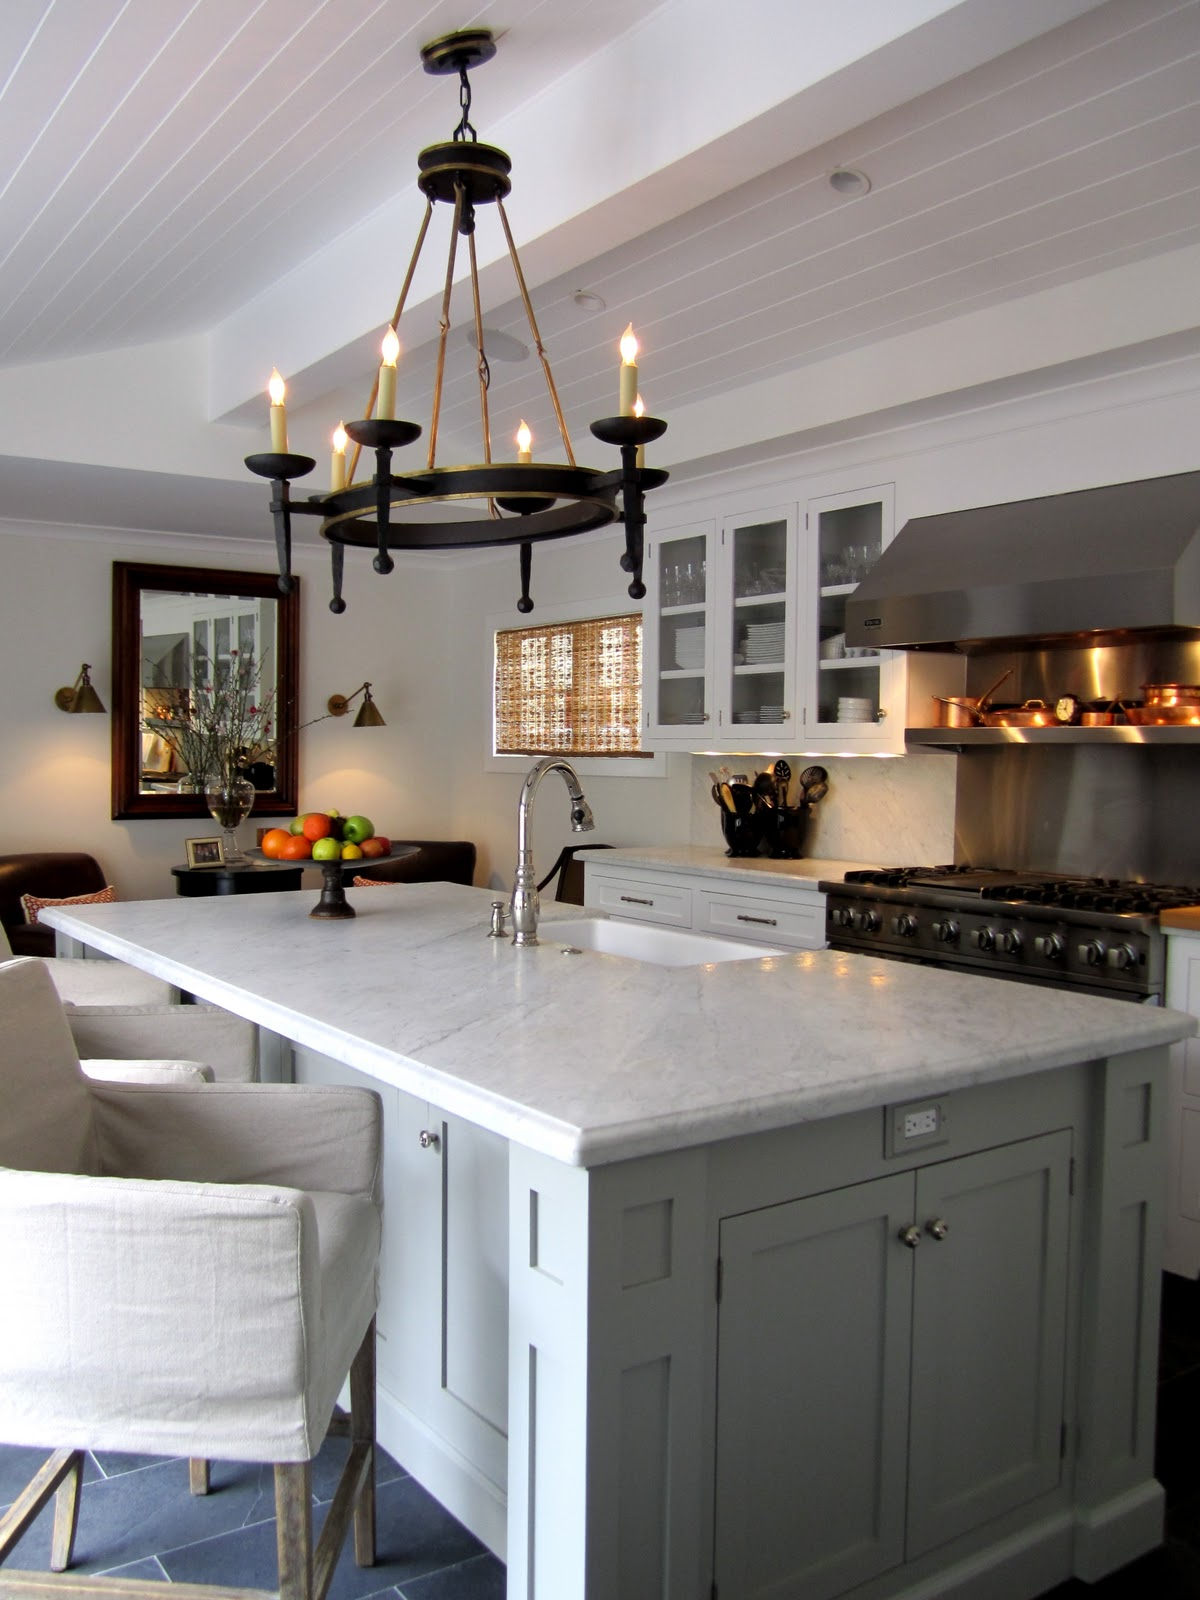 How Much Did You Spend On Kitchen Remodel